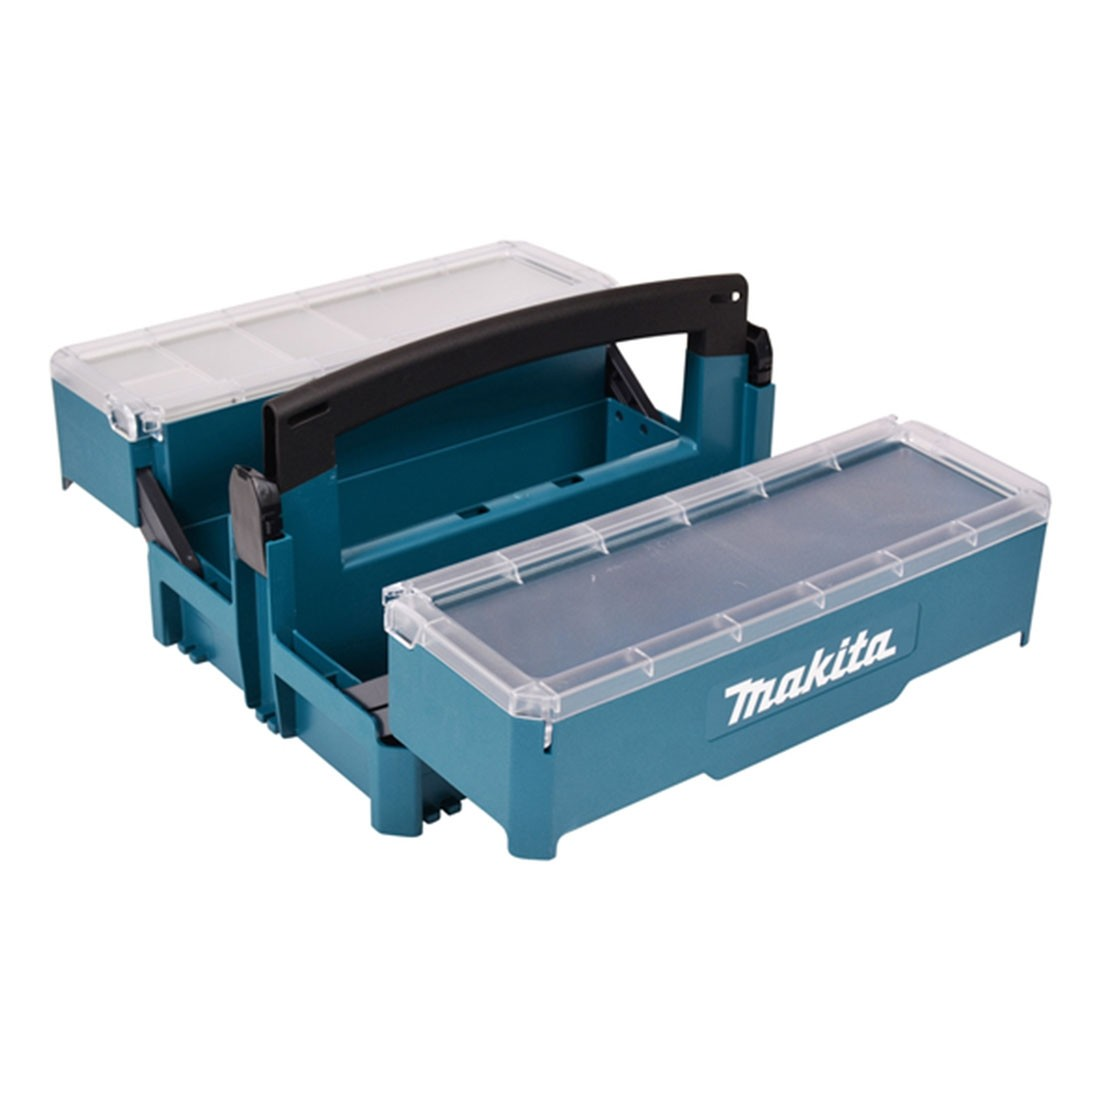 MAKITA STACKING CASE CANTILEVER TOOL BOX - P-84137 - 395MM (L) X 295MM (W) X 234MM (H)